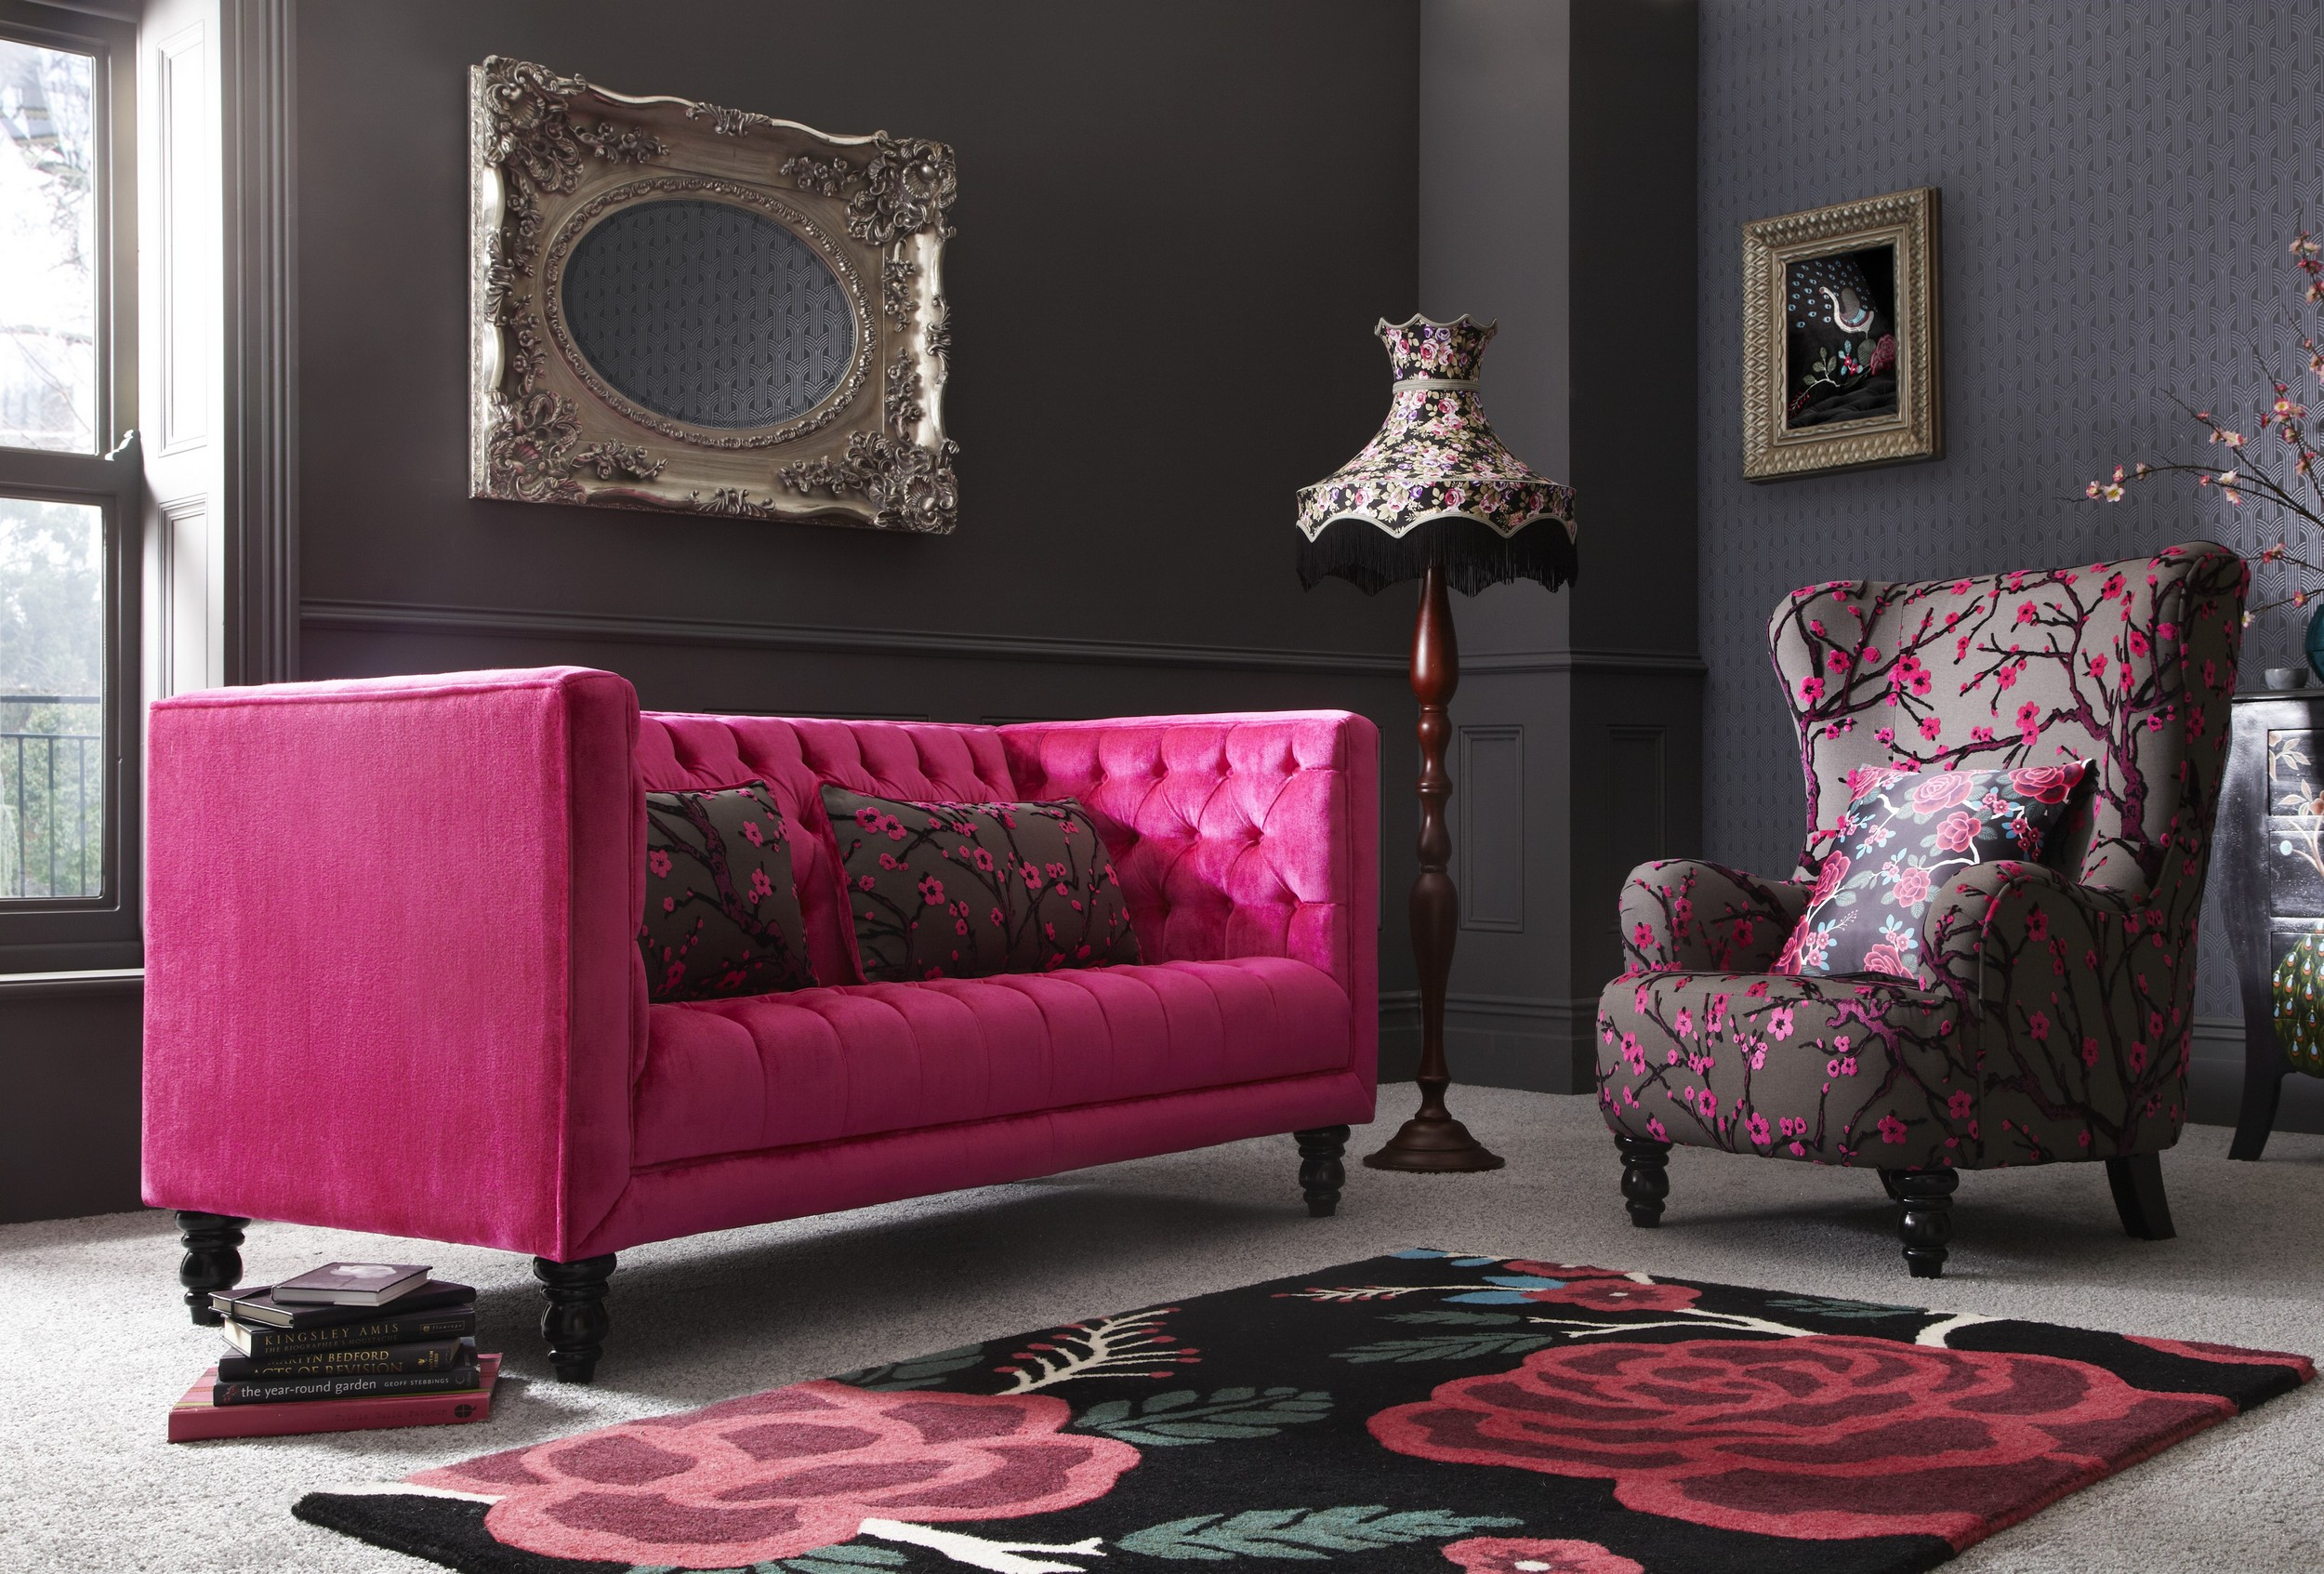 A Very eclectic furniture collection by Fearne Cotton